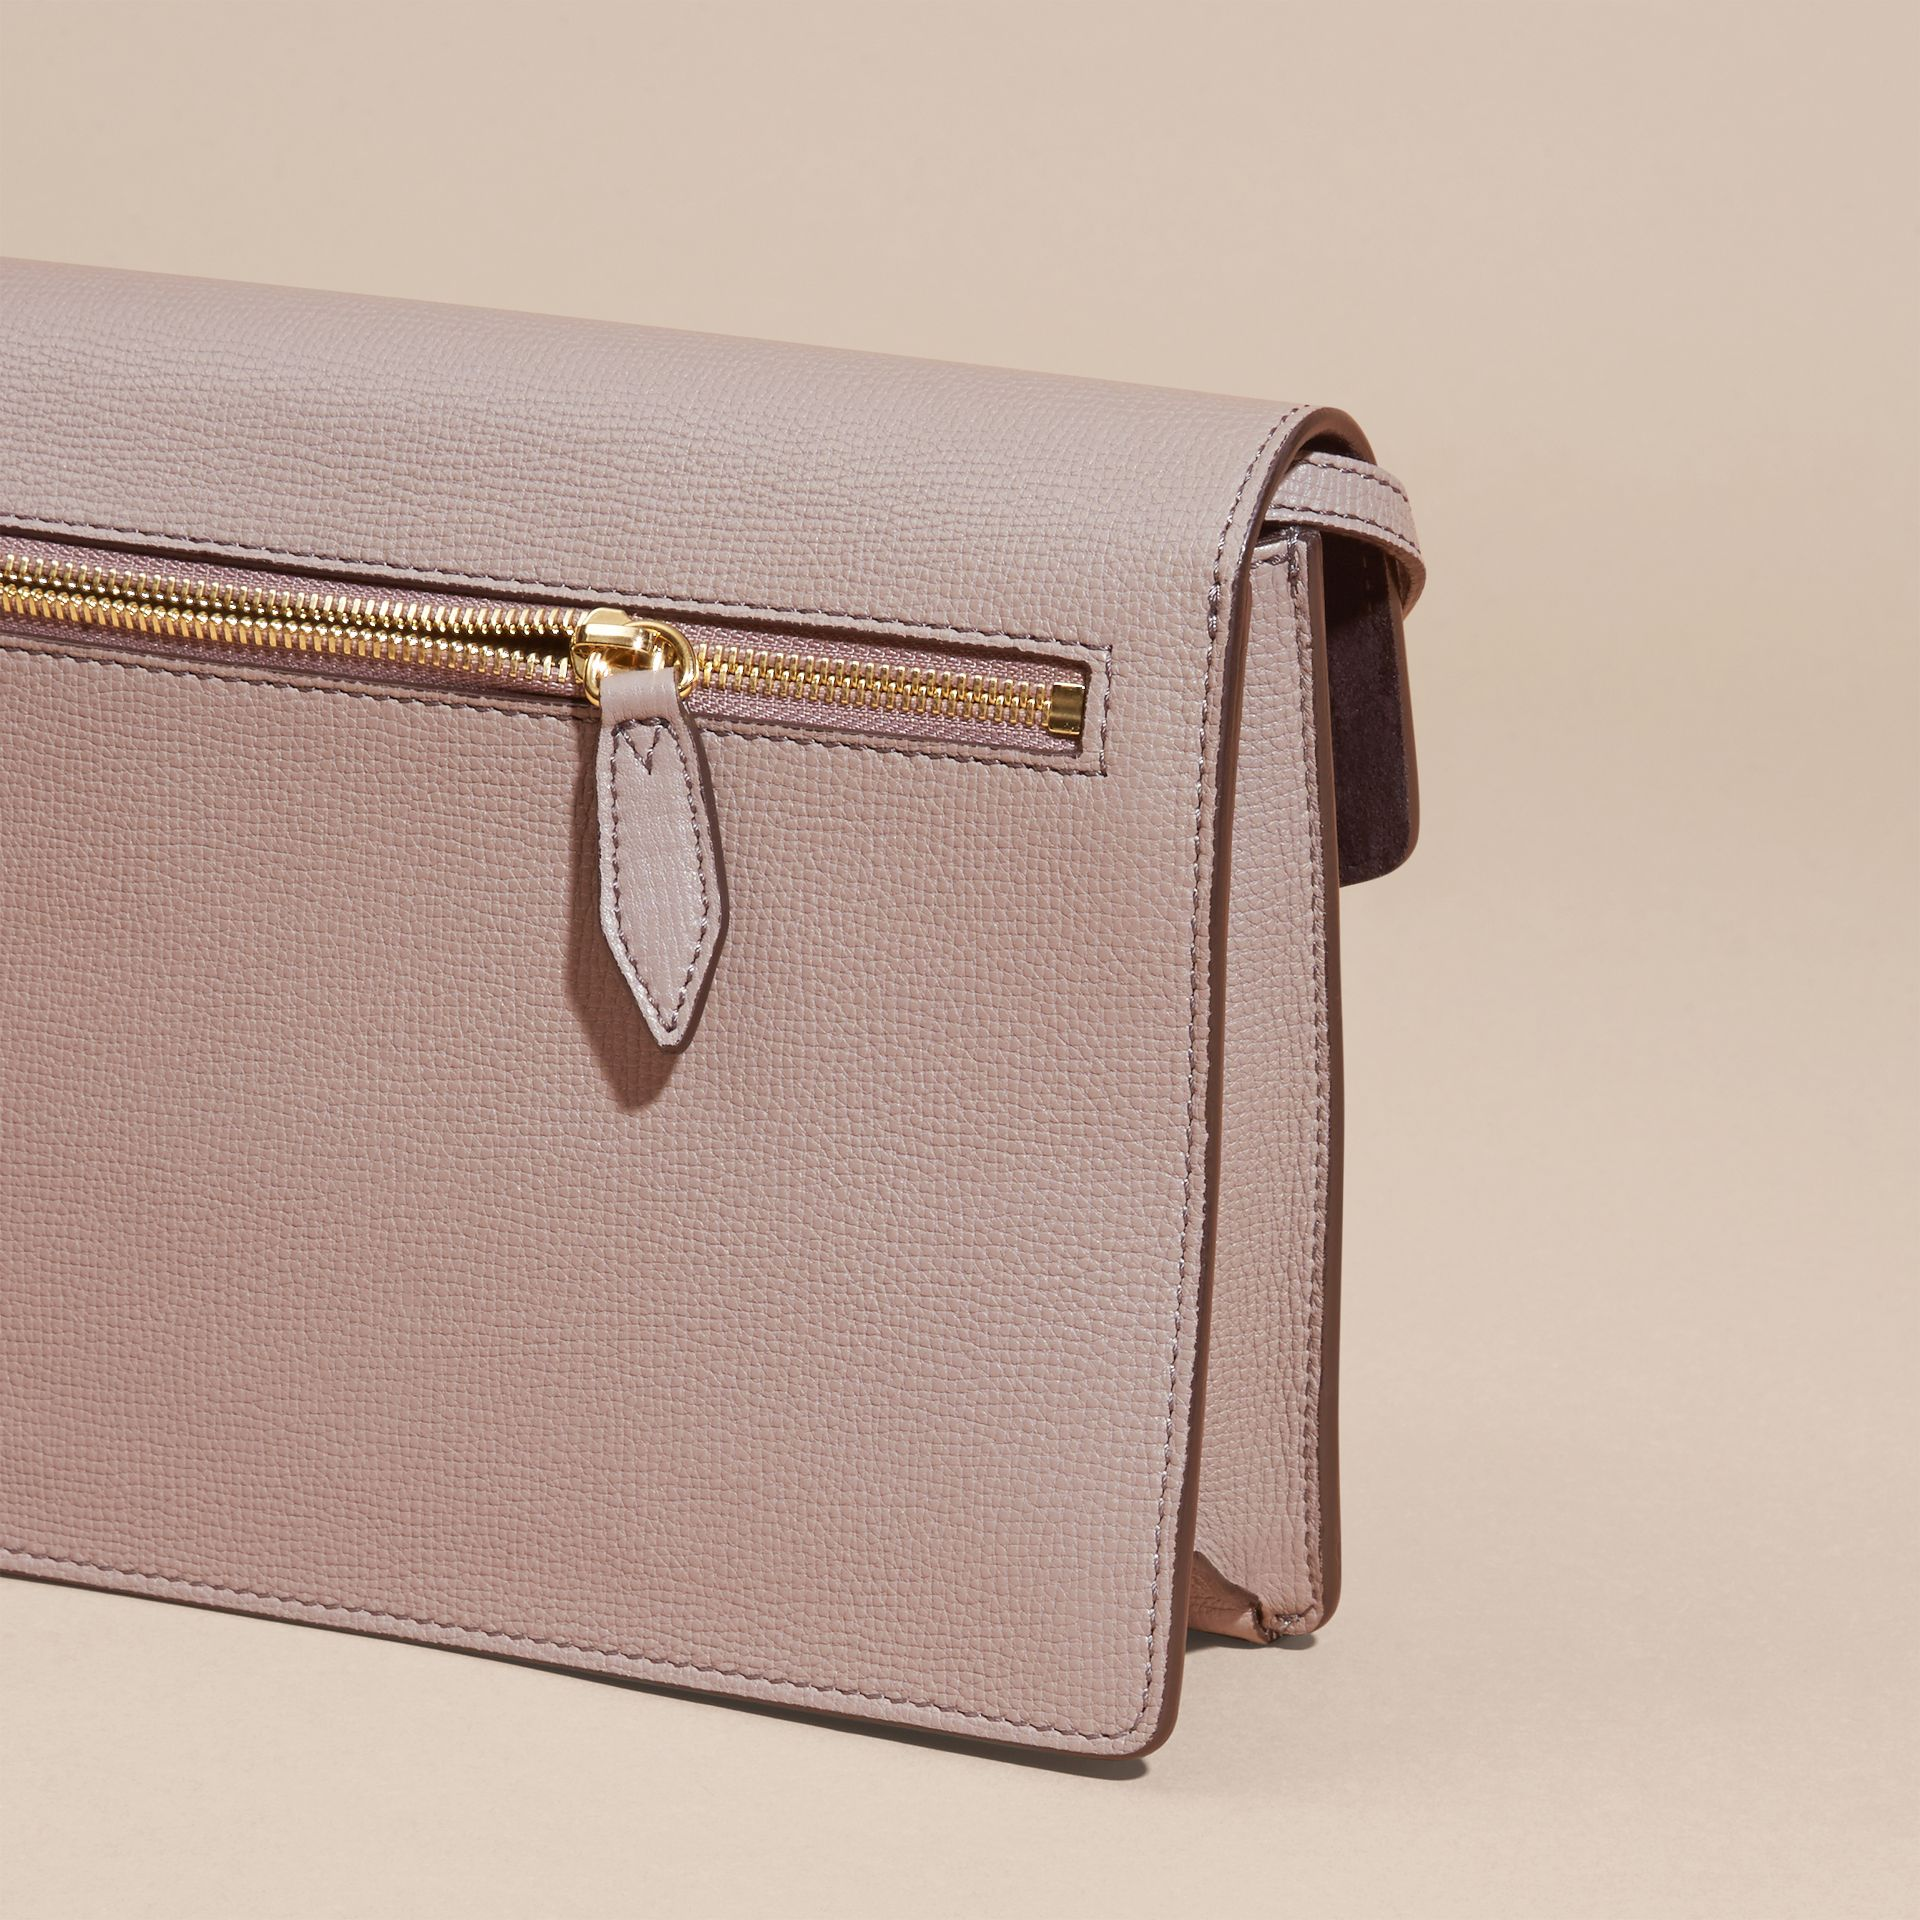 Thistle grey Small Leather and House Check Crossbody Bag Thistle Grey - gallery image 4